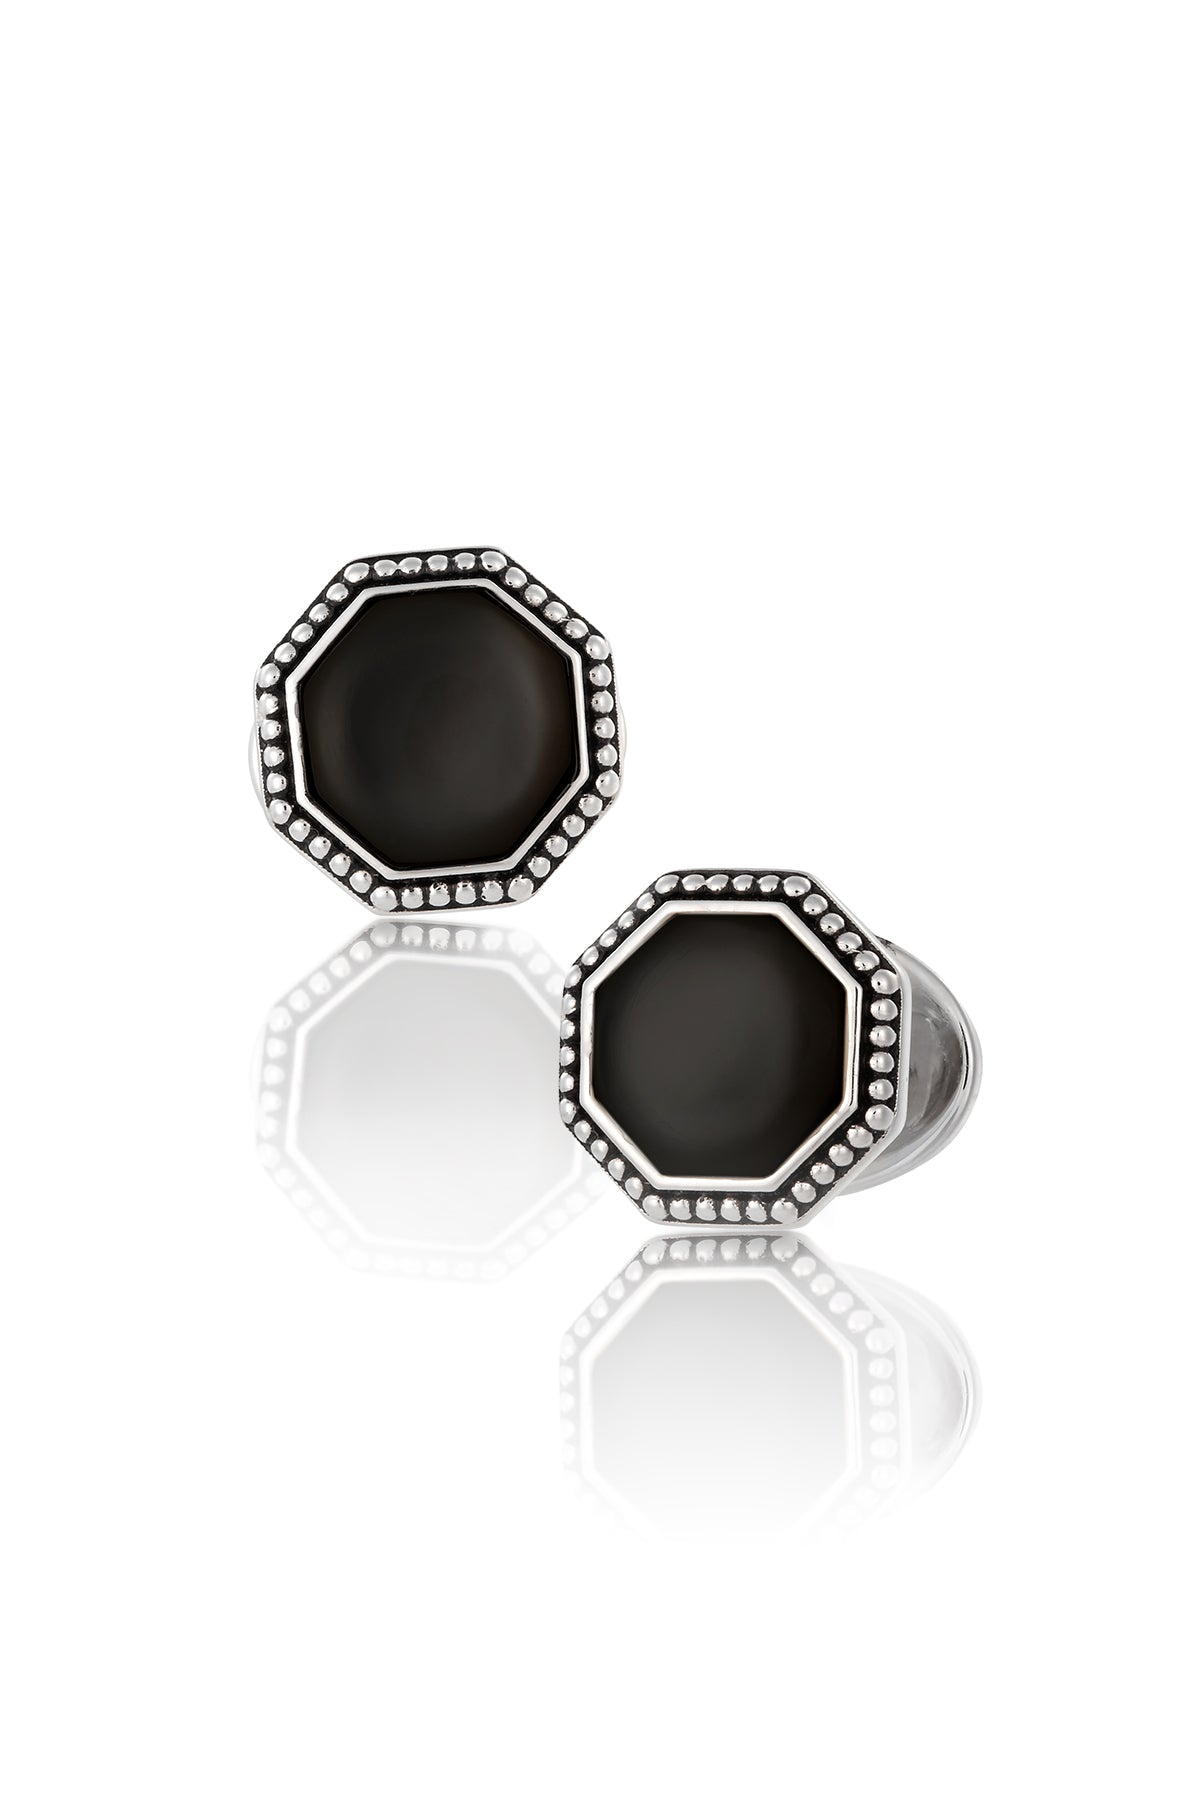 Jan Leslie Black Onyx & Antique Border Octagon Cufflinks Sterling Silver